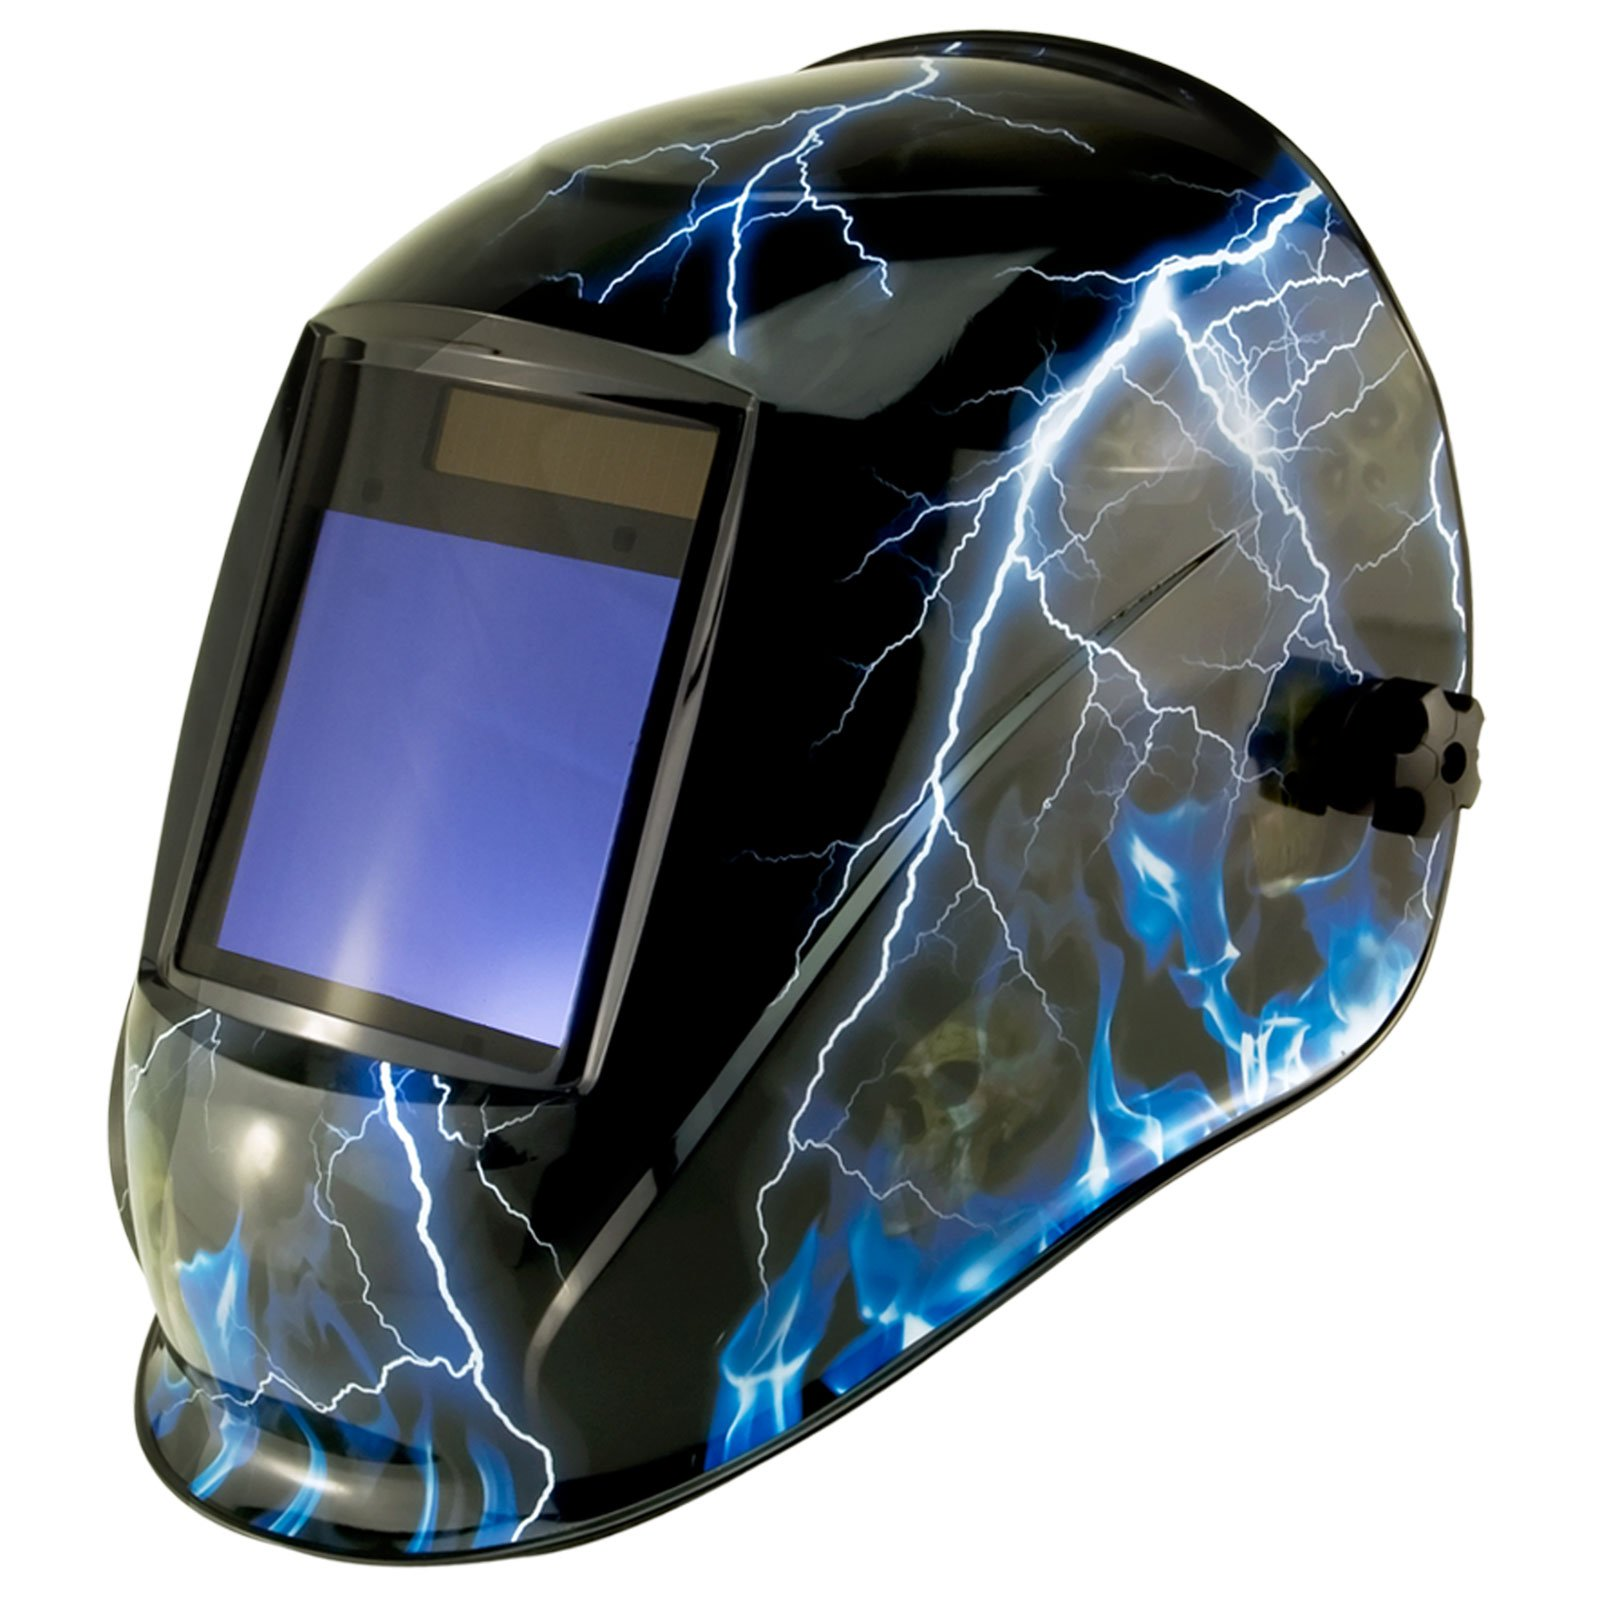 True-Fusion Big-1 Lightning IQ2000 Solar Powered Auto Darkening Welding Helmet Hood Grind mask with Massive View Area (98mm x 87mm - 3.85x3.45 inches) FREE Storage Bag, Spare Lenses and Spare Sweatband included